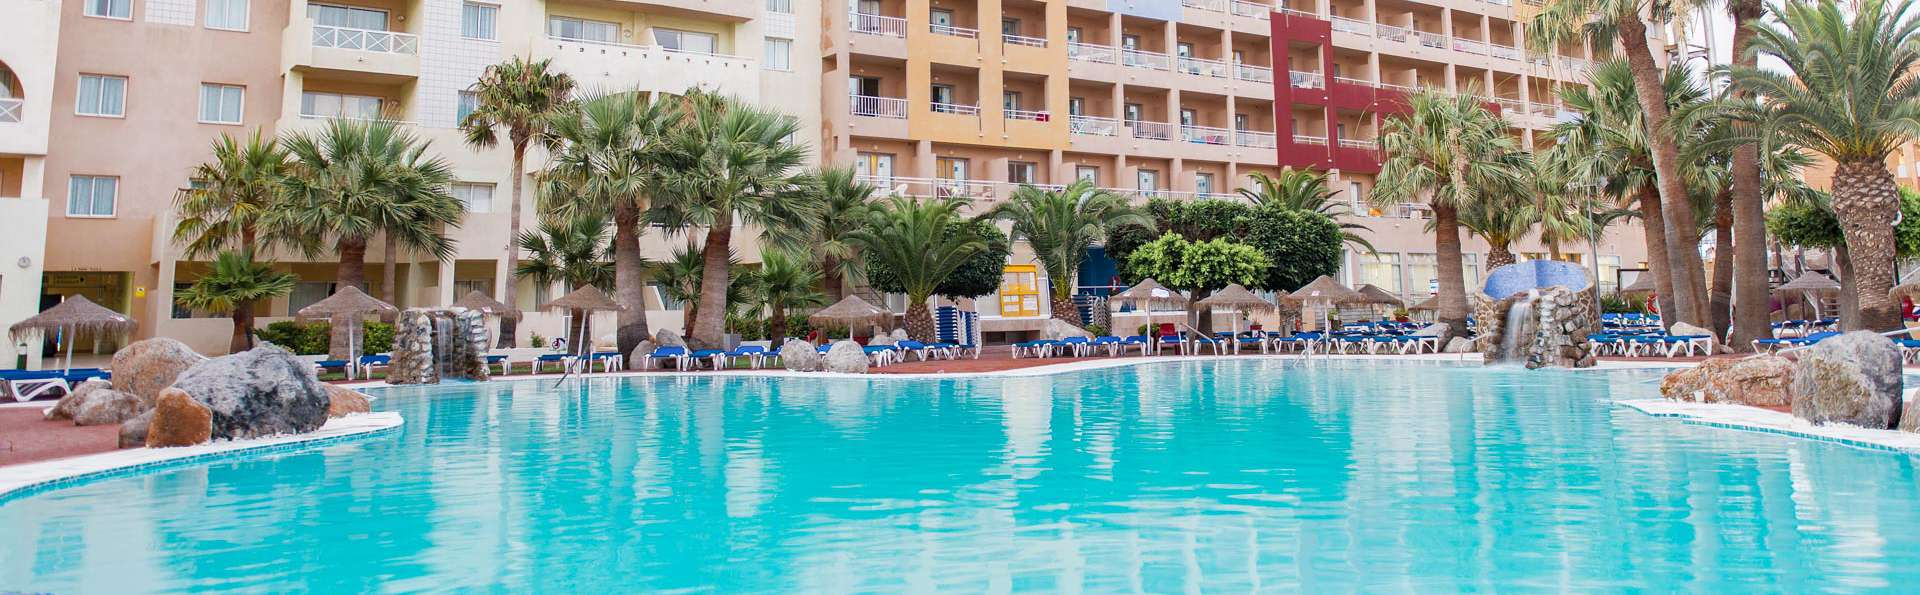 Ohtels Fenix Family - EDIT_N2_POOL_03.jpg